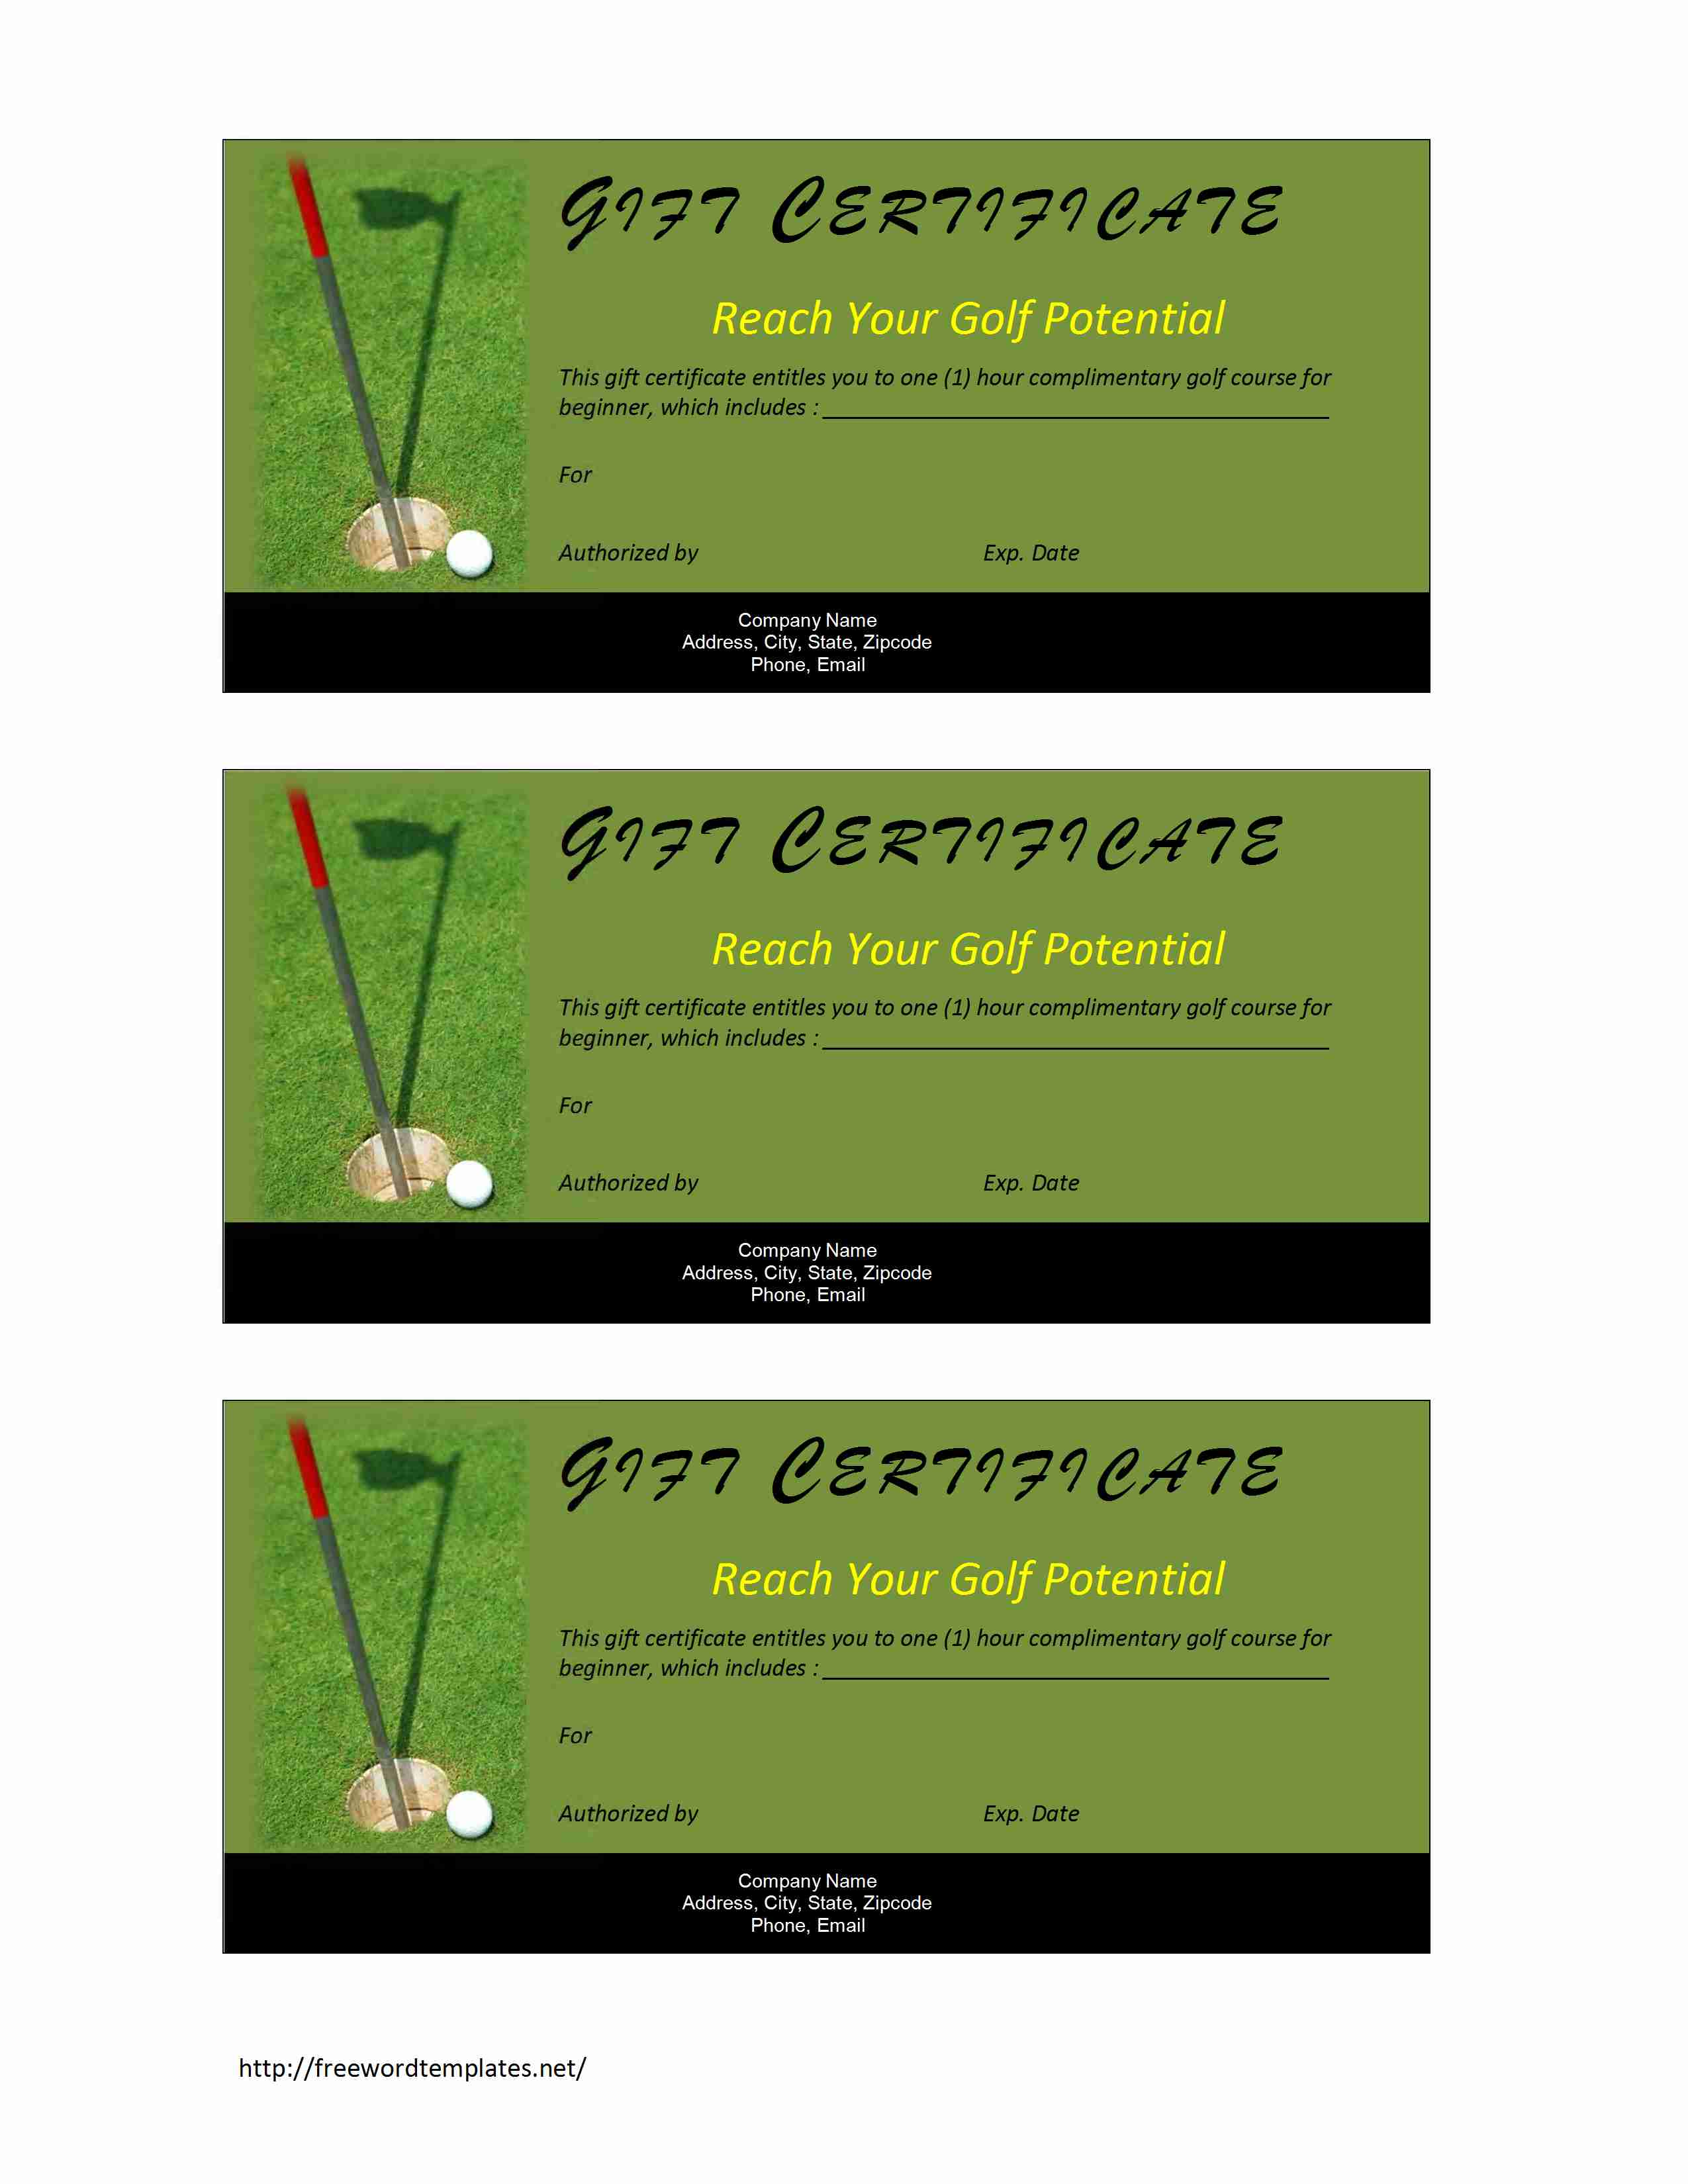 golf gift certificate wordtemplates net golf gift certificate template for word